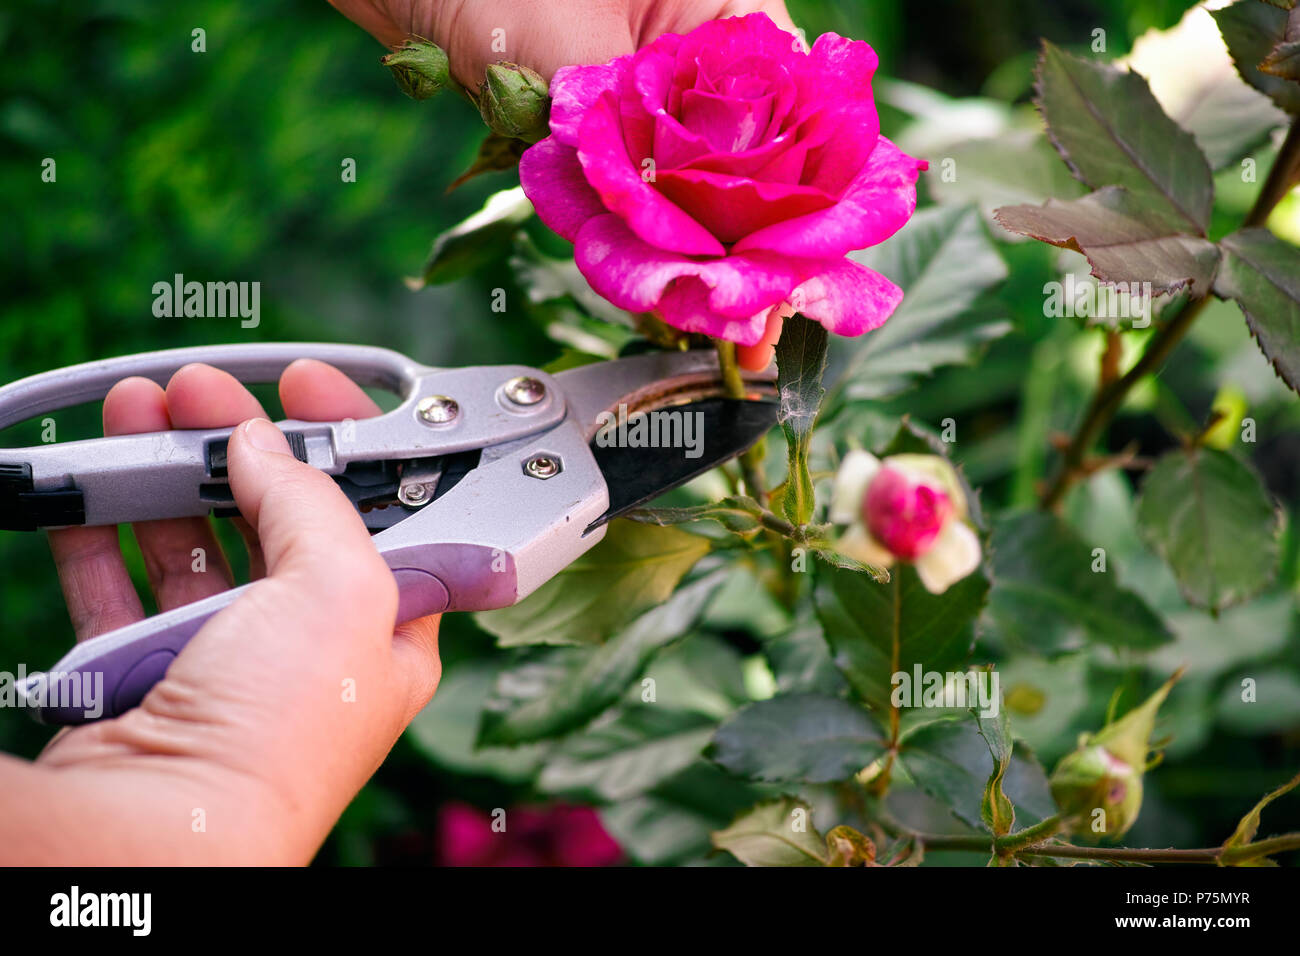 Woman hands with gardening shears cutting pink rose of the bush. - Stock Image